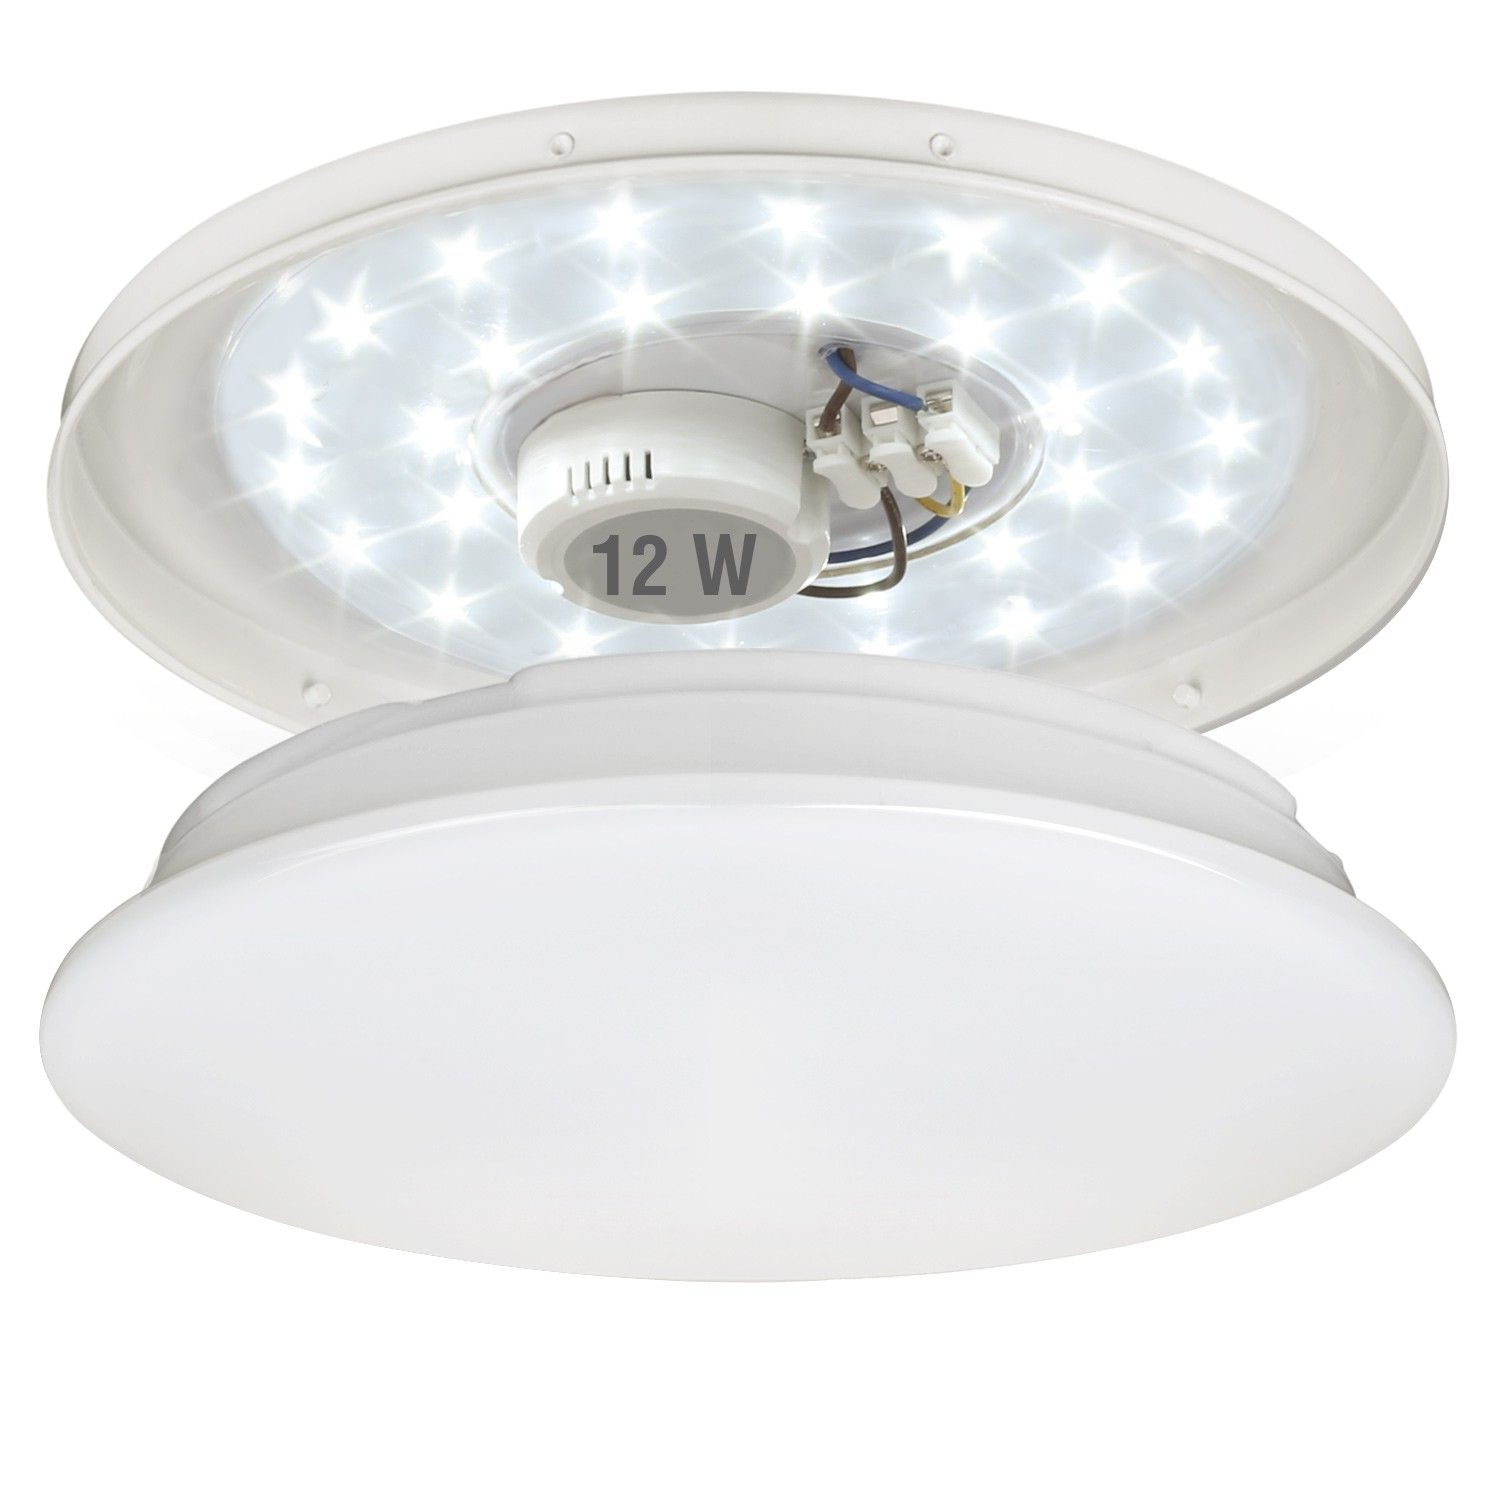 12w Led Ceiling Lights 22w Fluorescent Bulb Equiv Daylight White 950lm Lighting For Living Roo Led Ceiling Light Fixtures Led Ceiling Lights Ceiling Lights